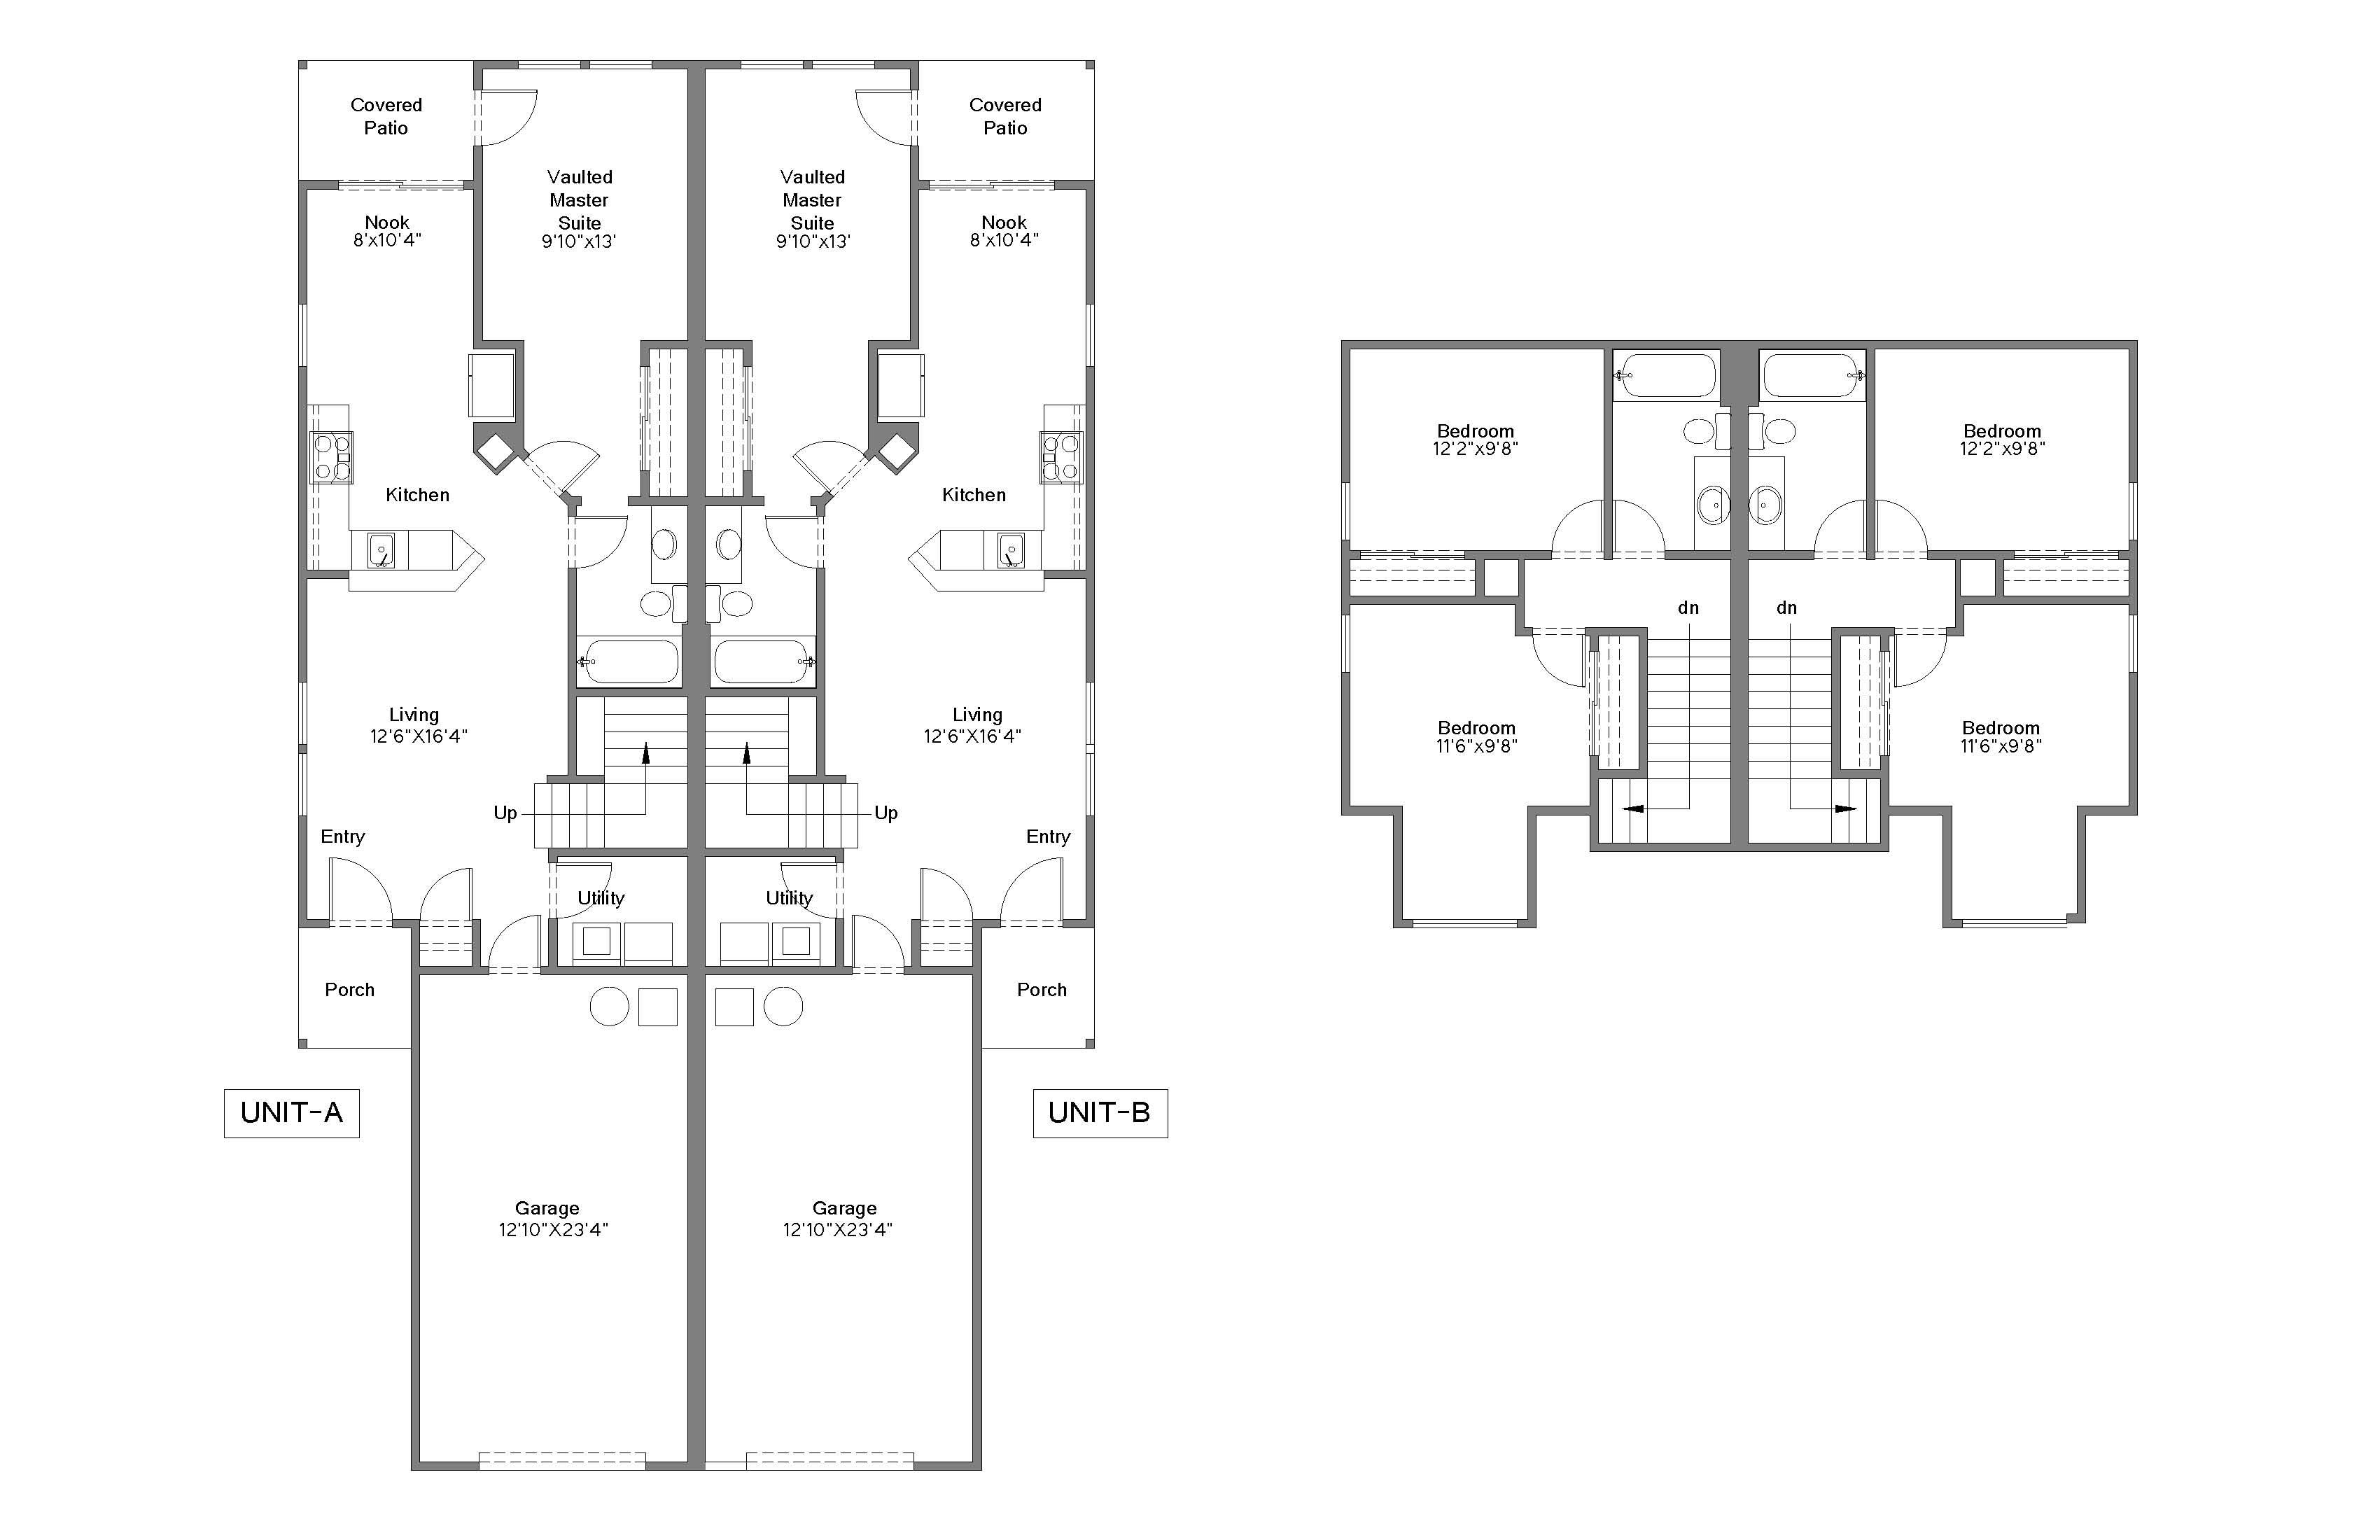 Architectural floor plan floor plan with autocad drawings for Autocad house drawings